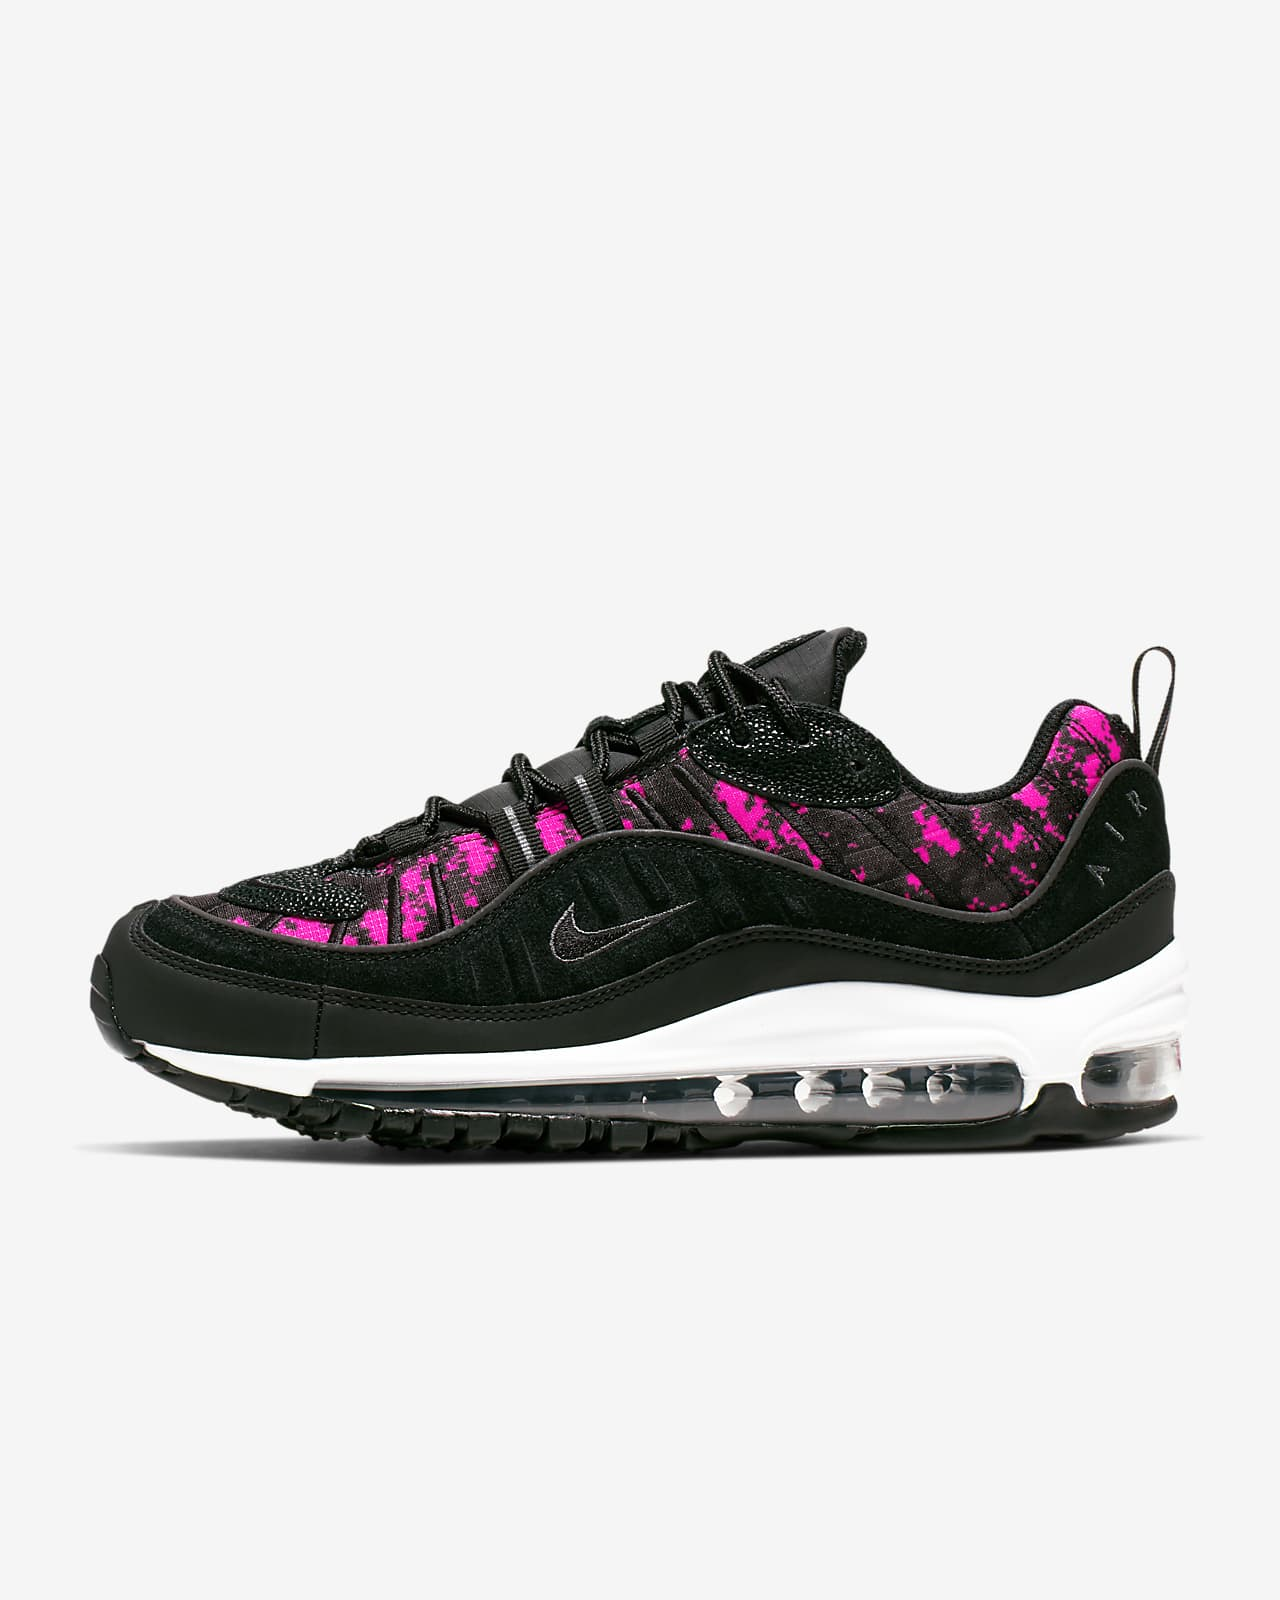 Nike Air Max 98 Premium Camo Women's Shoe